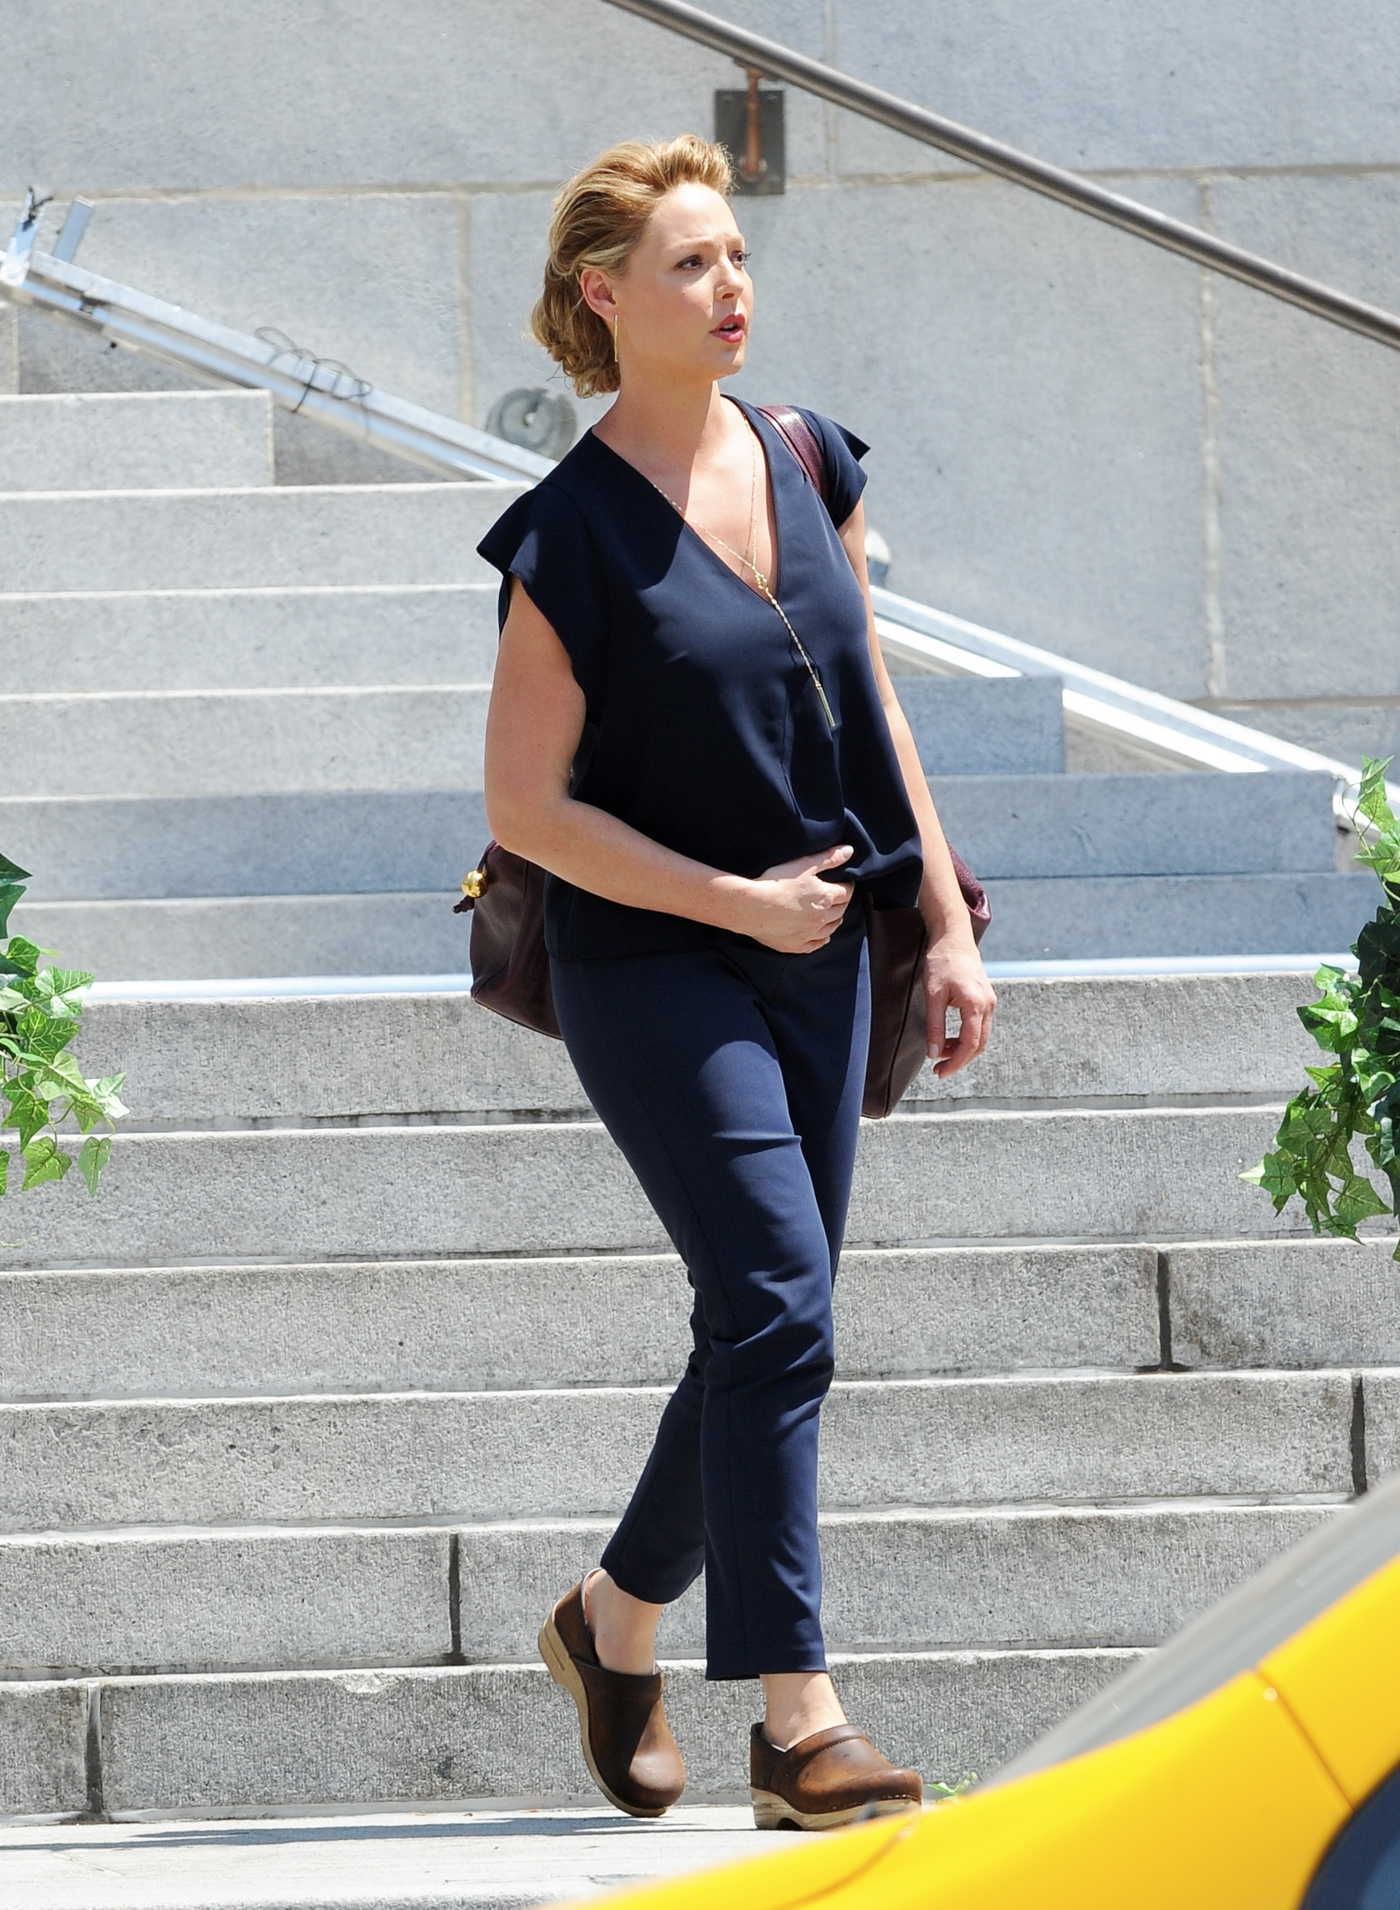 Katherine Heigl on the Set of the TV Show Doubt in Los Angeles 08/02/2016